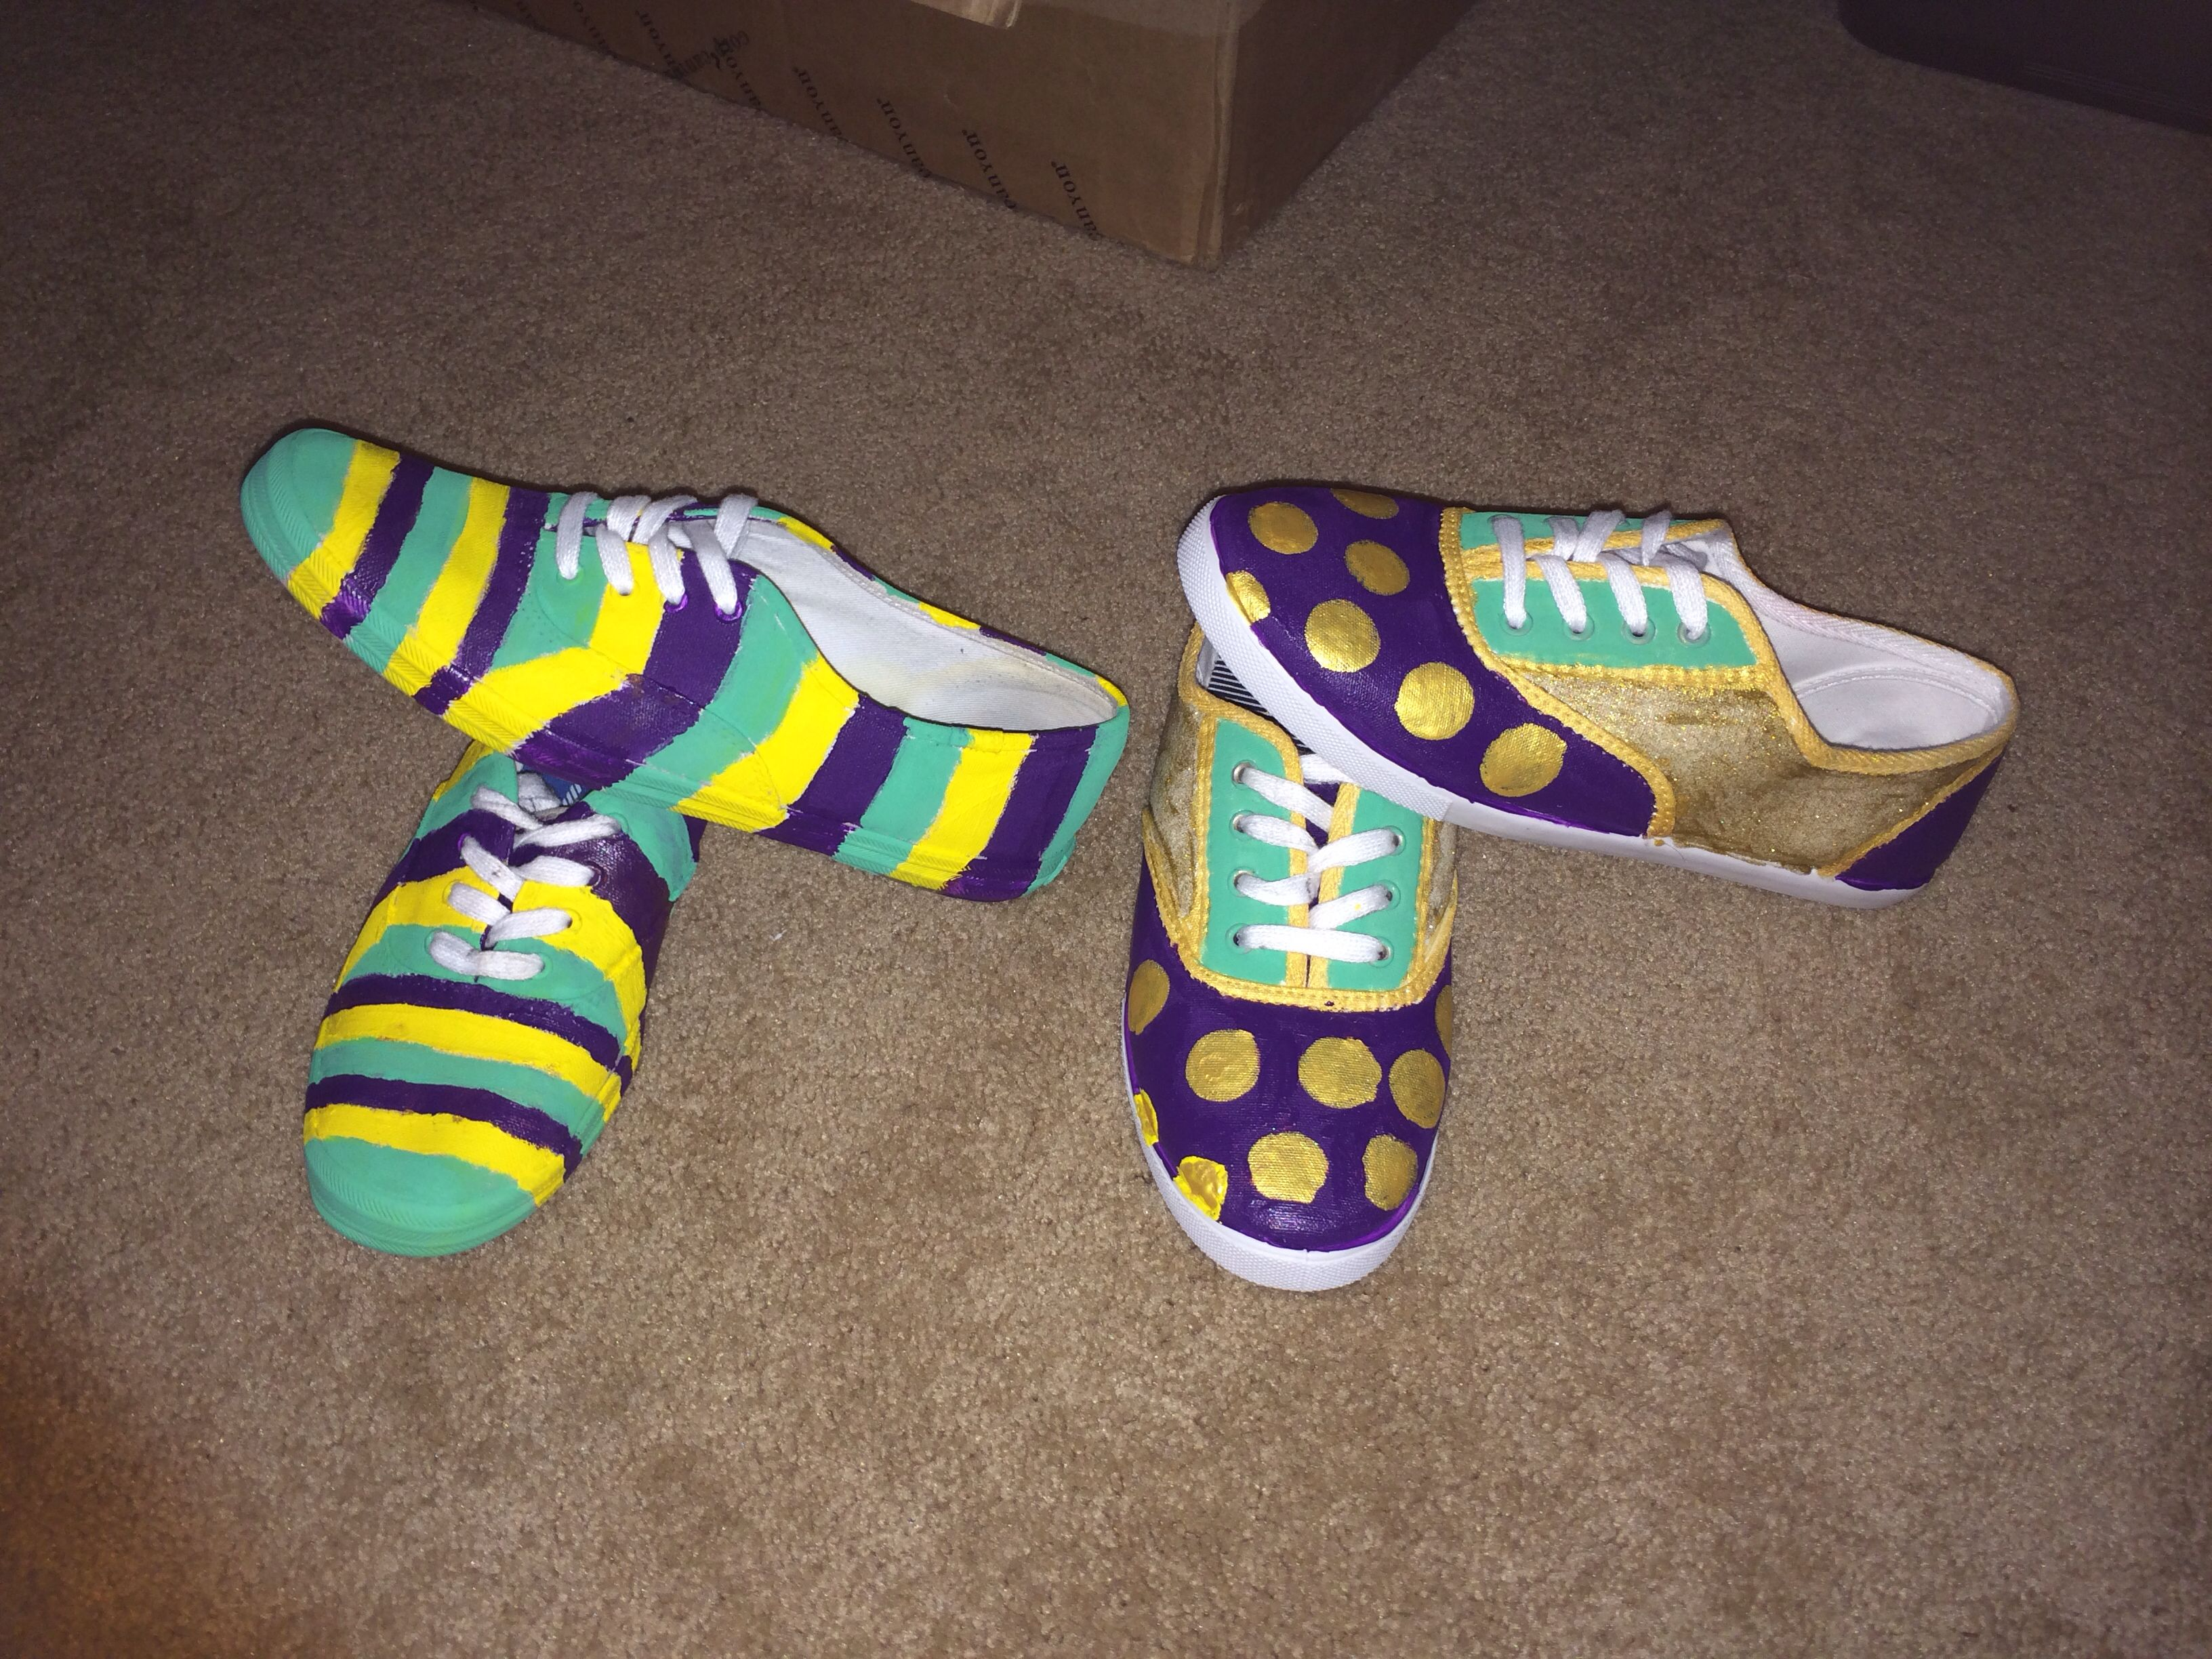 Painted Mardi Gras Shoes I Can Buy The Shoes And Paint Them For You For